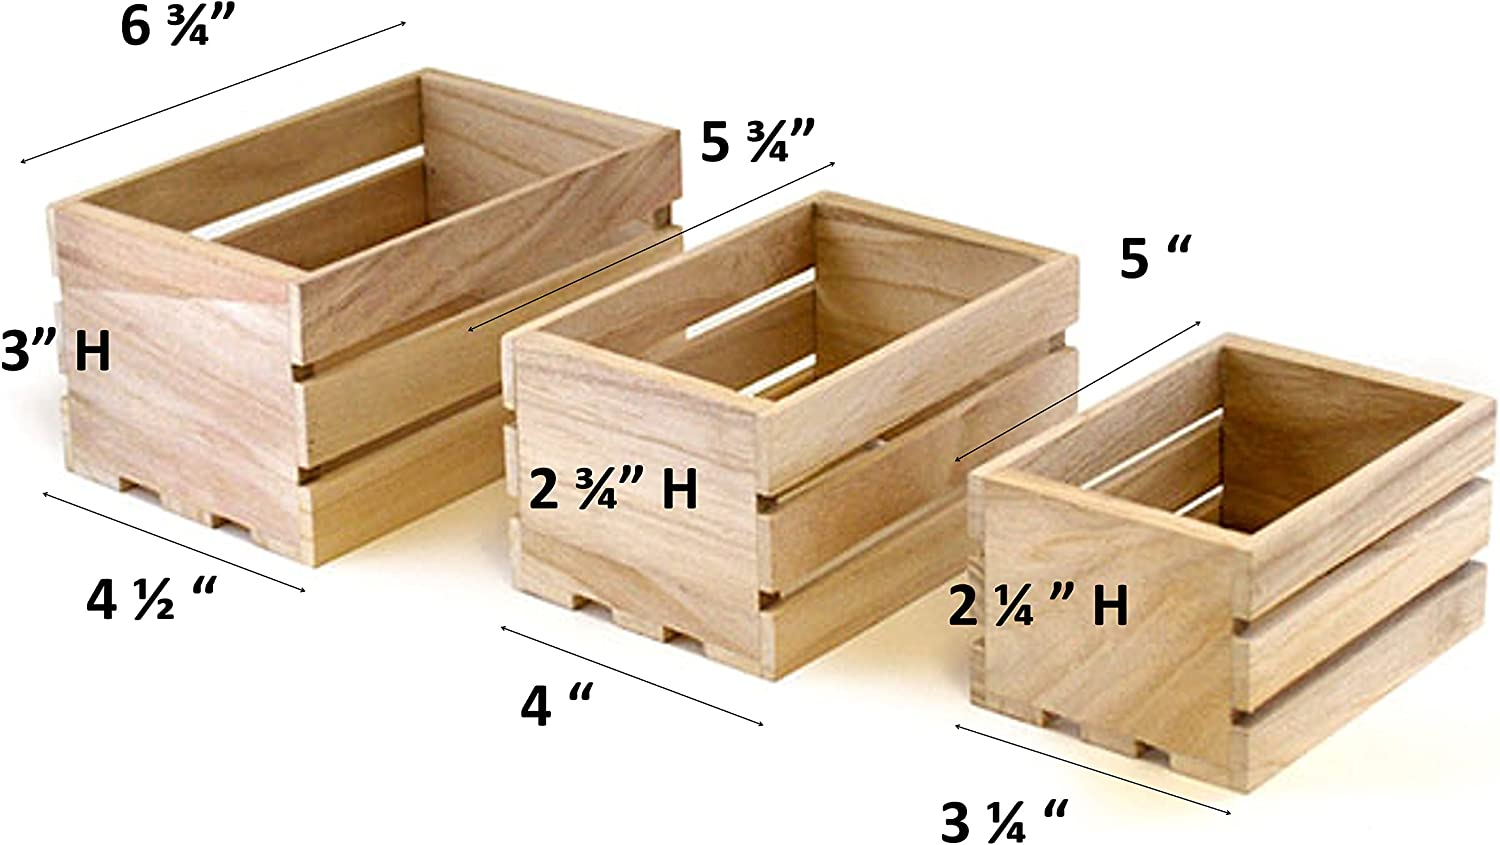 Juvale Wooden Crate 3-Count Small Decorative Storage Caddy Set Unfinished